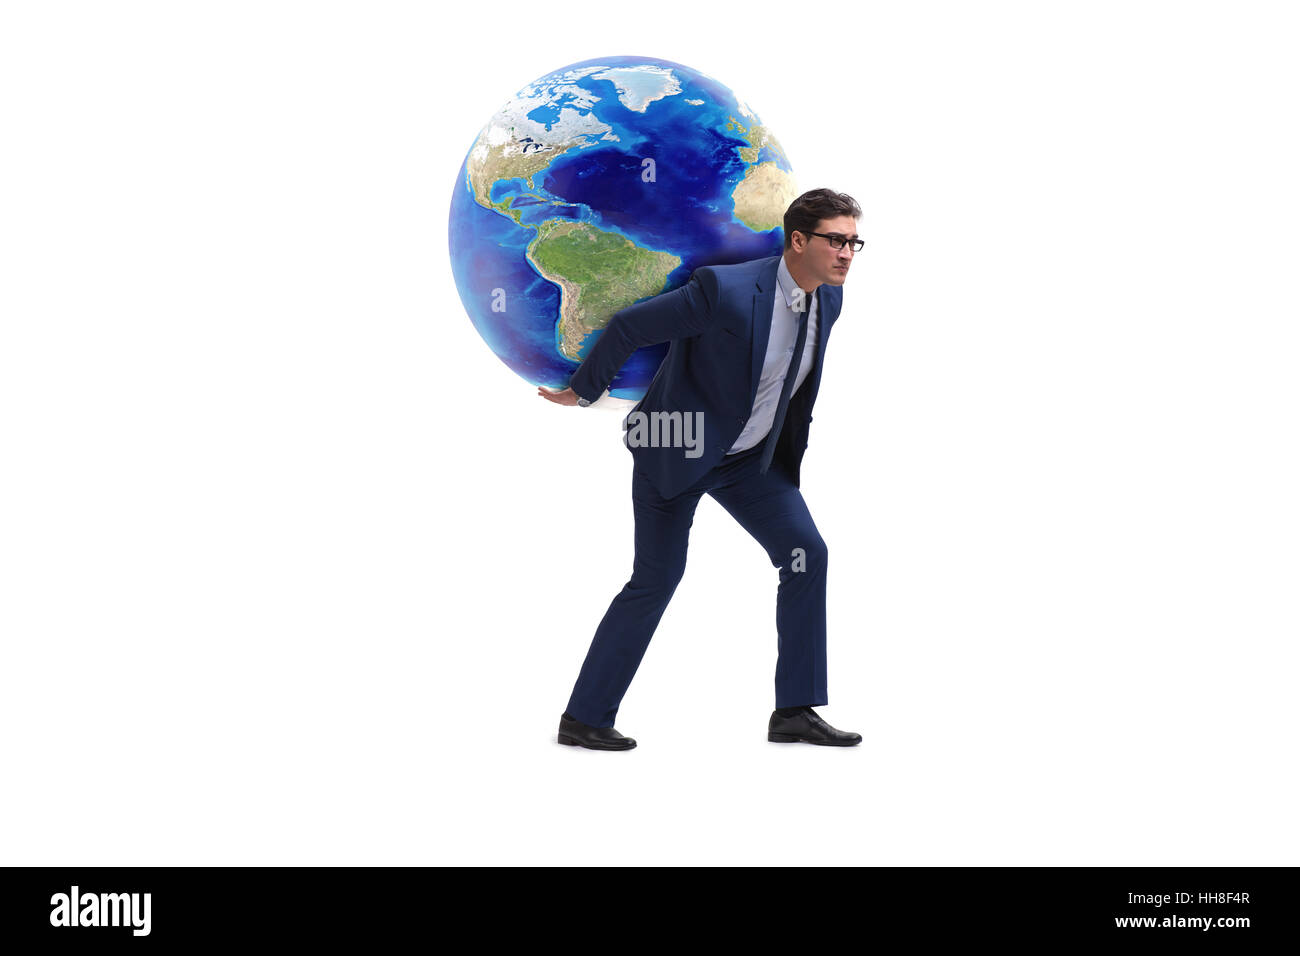 businessman carrying earth on his shoulders stock photo 131109239